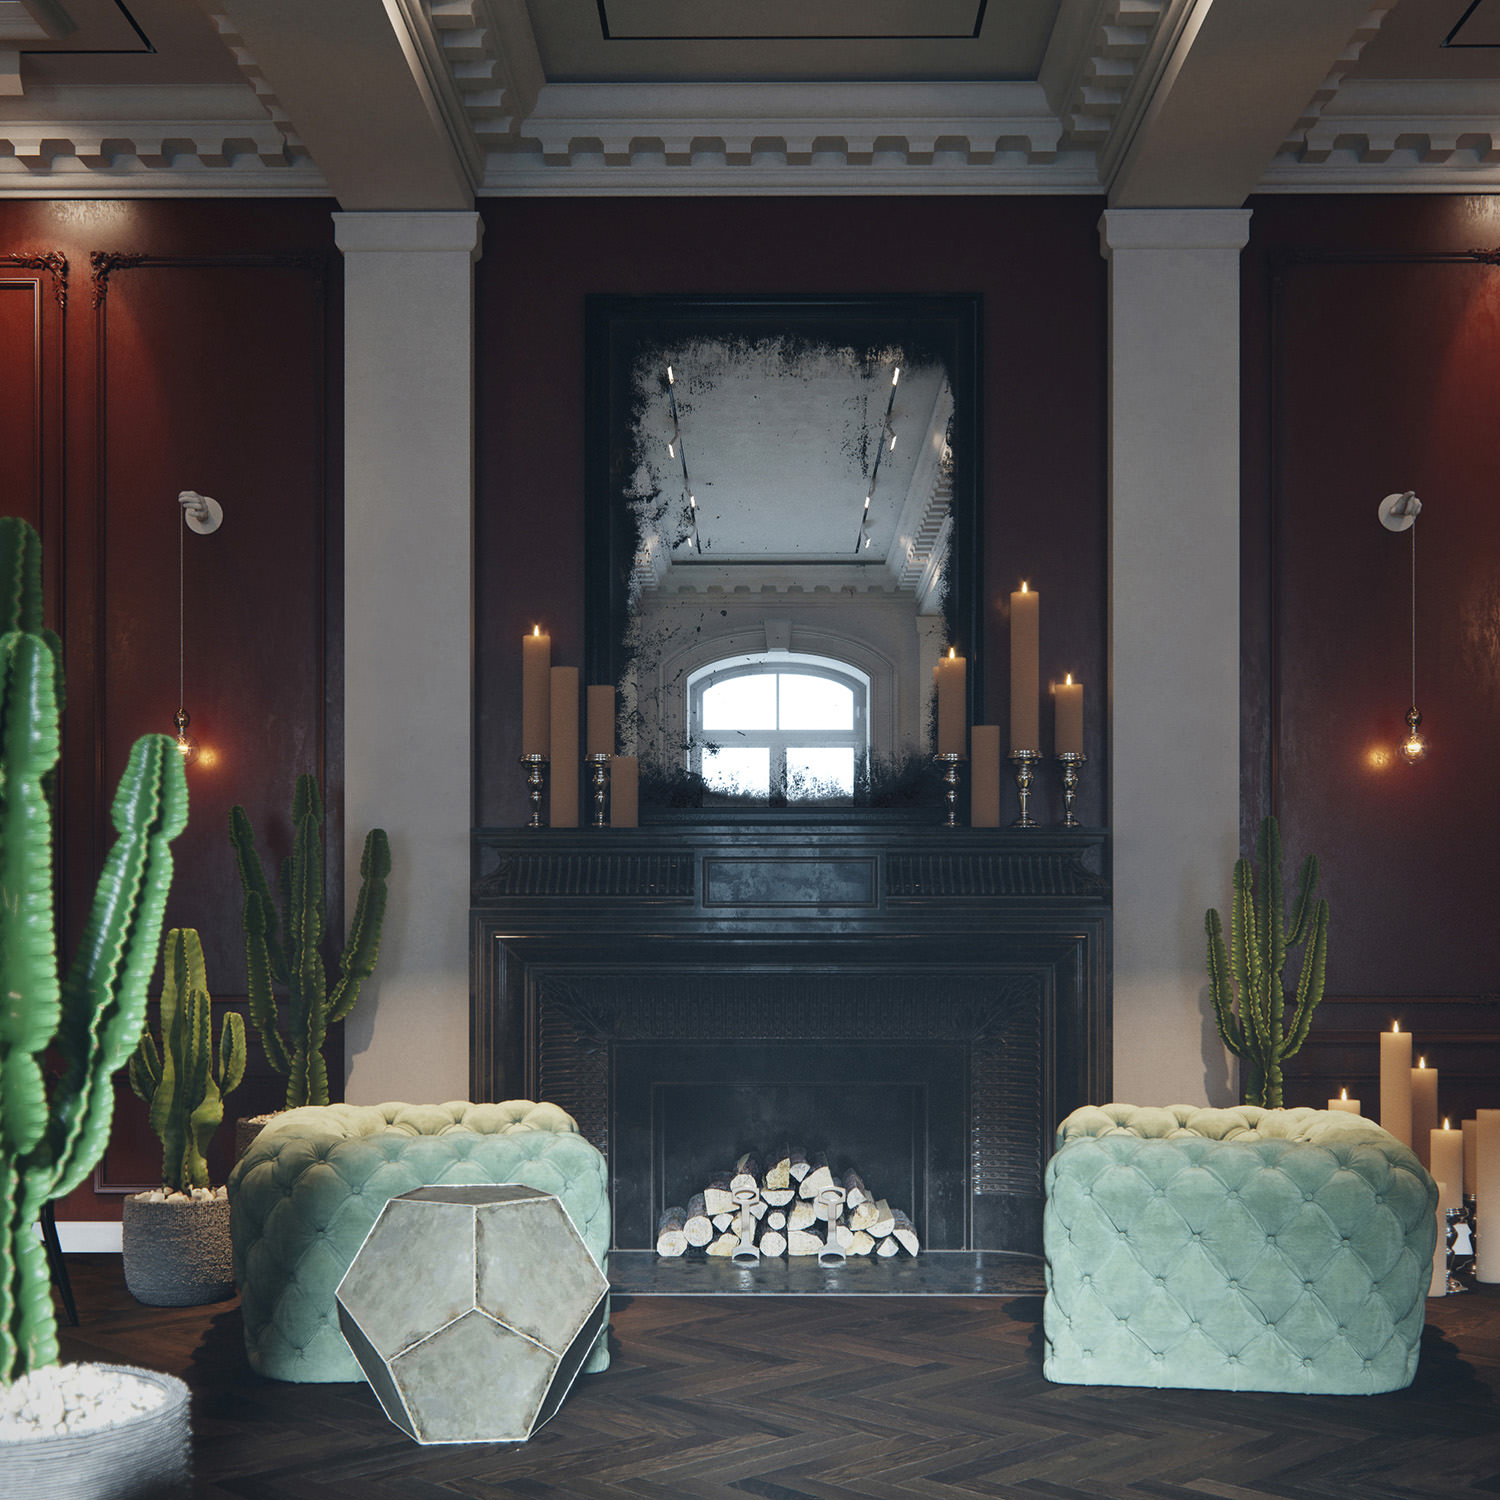 High-quality interior render of an aged mirror, mounted on a vintage fireplace, surrounded by two quilted suede armchairs